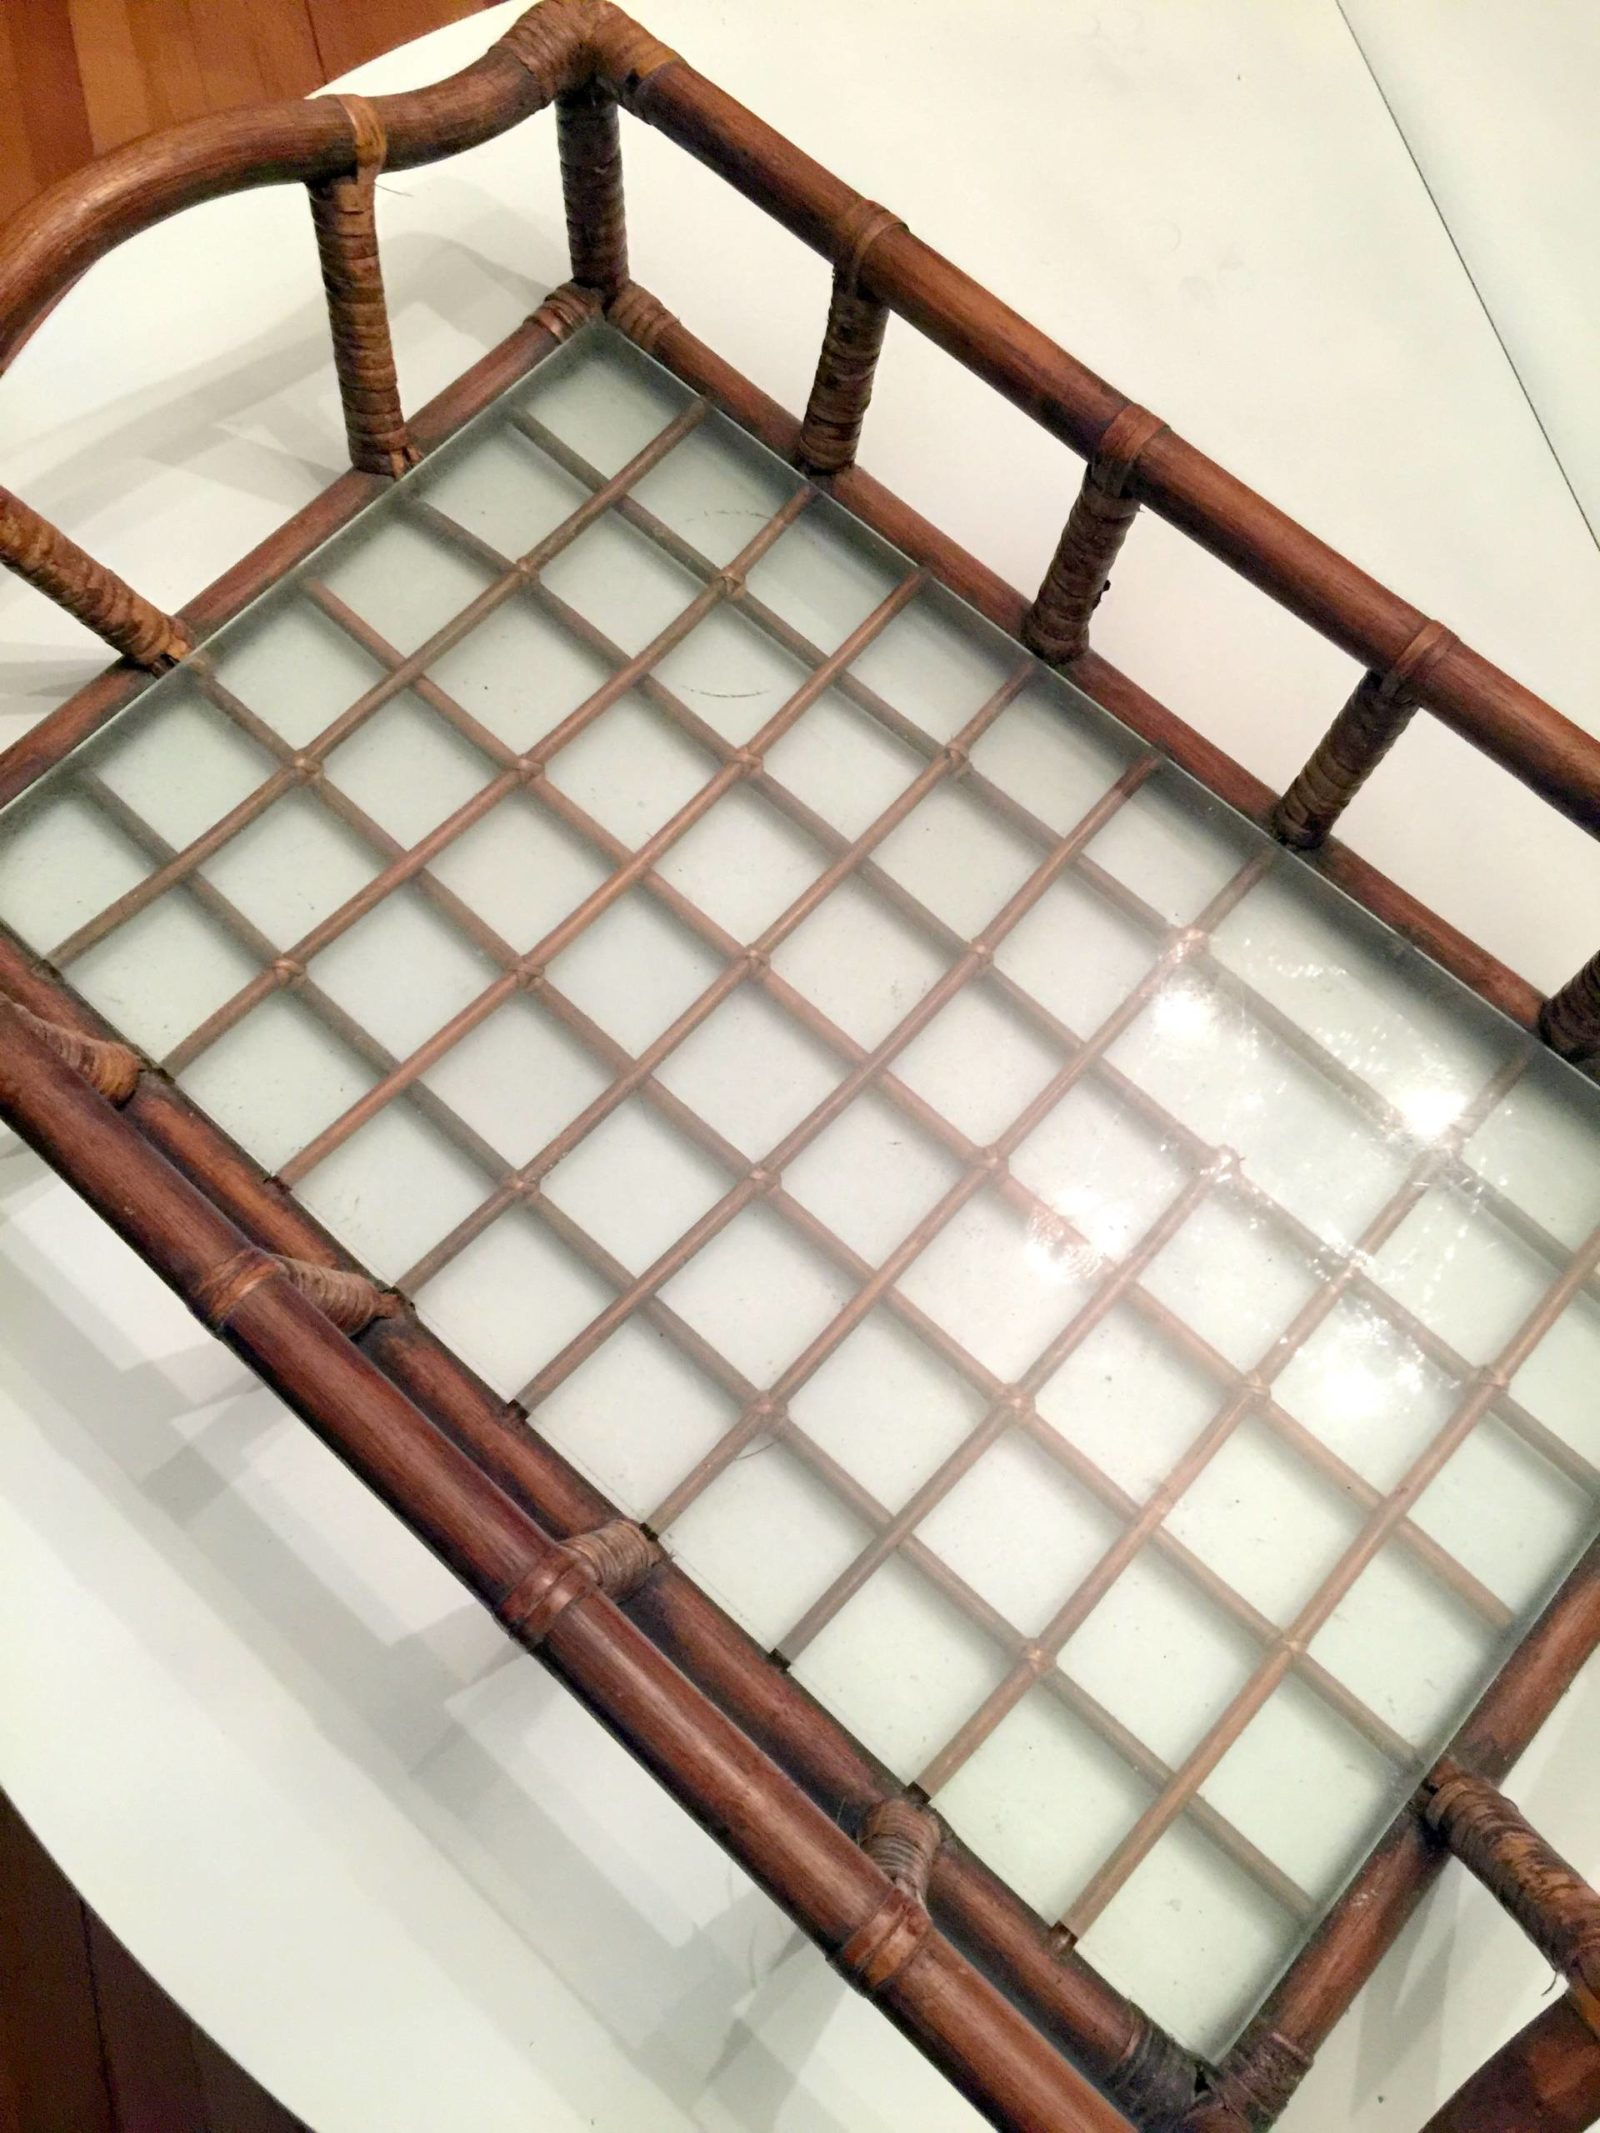 removable rattan serving tray